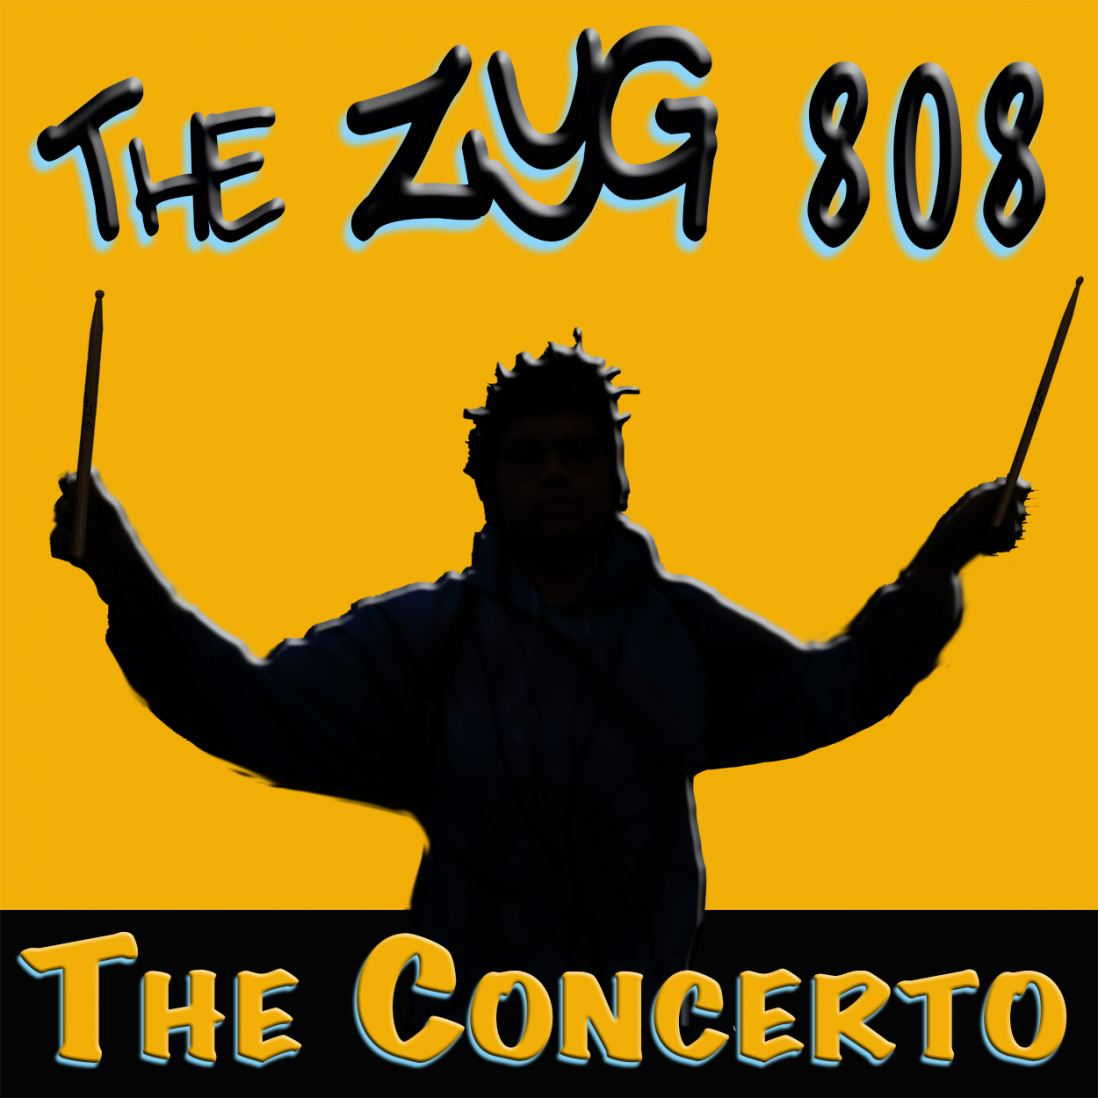 """The Concerto"" by The ZYG 808 goes n sale July 25th"